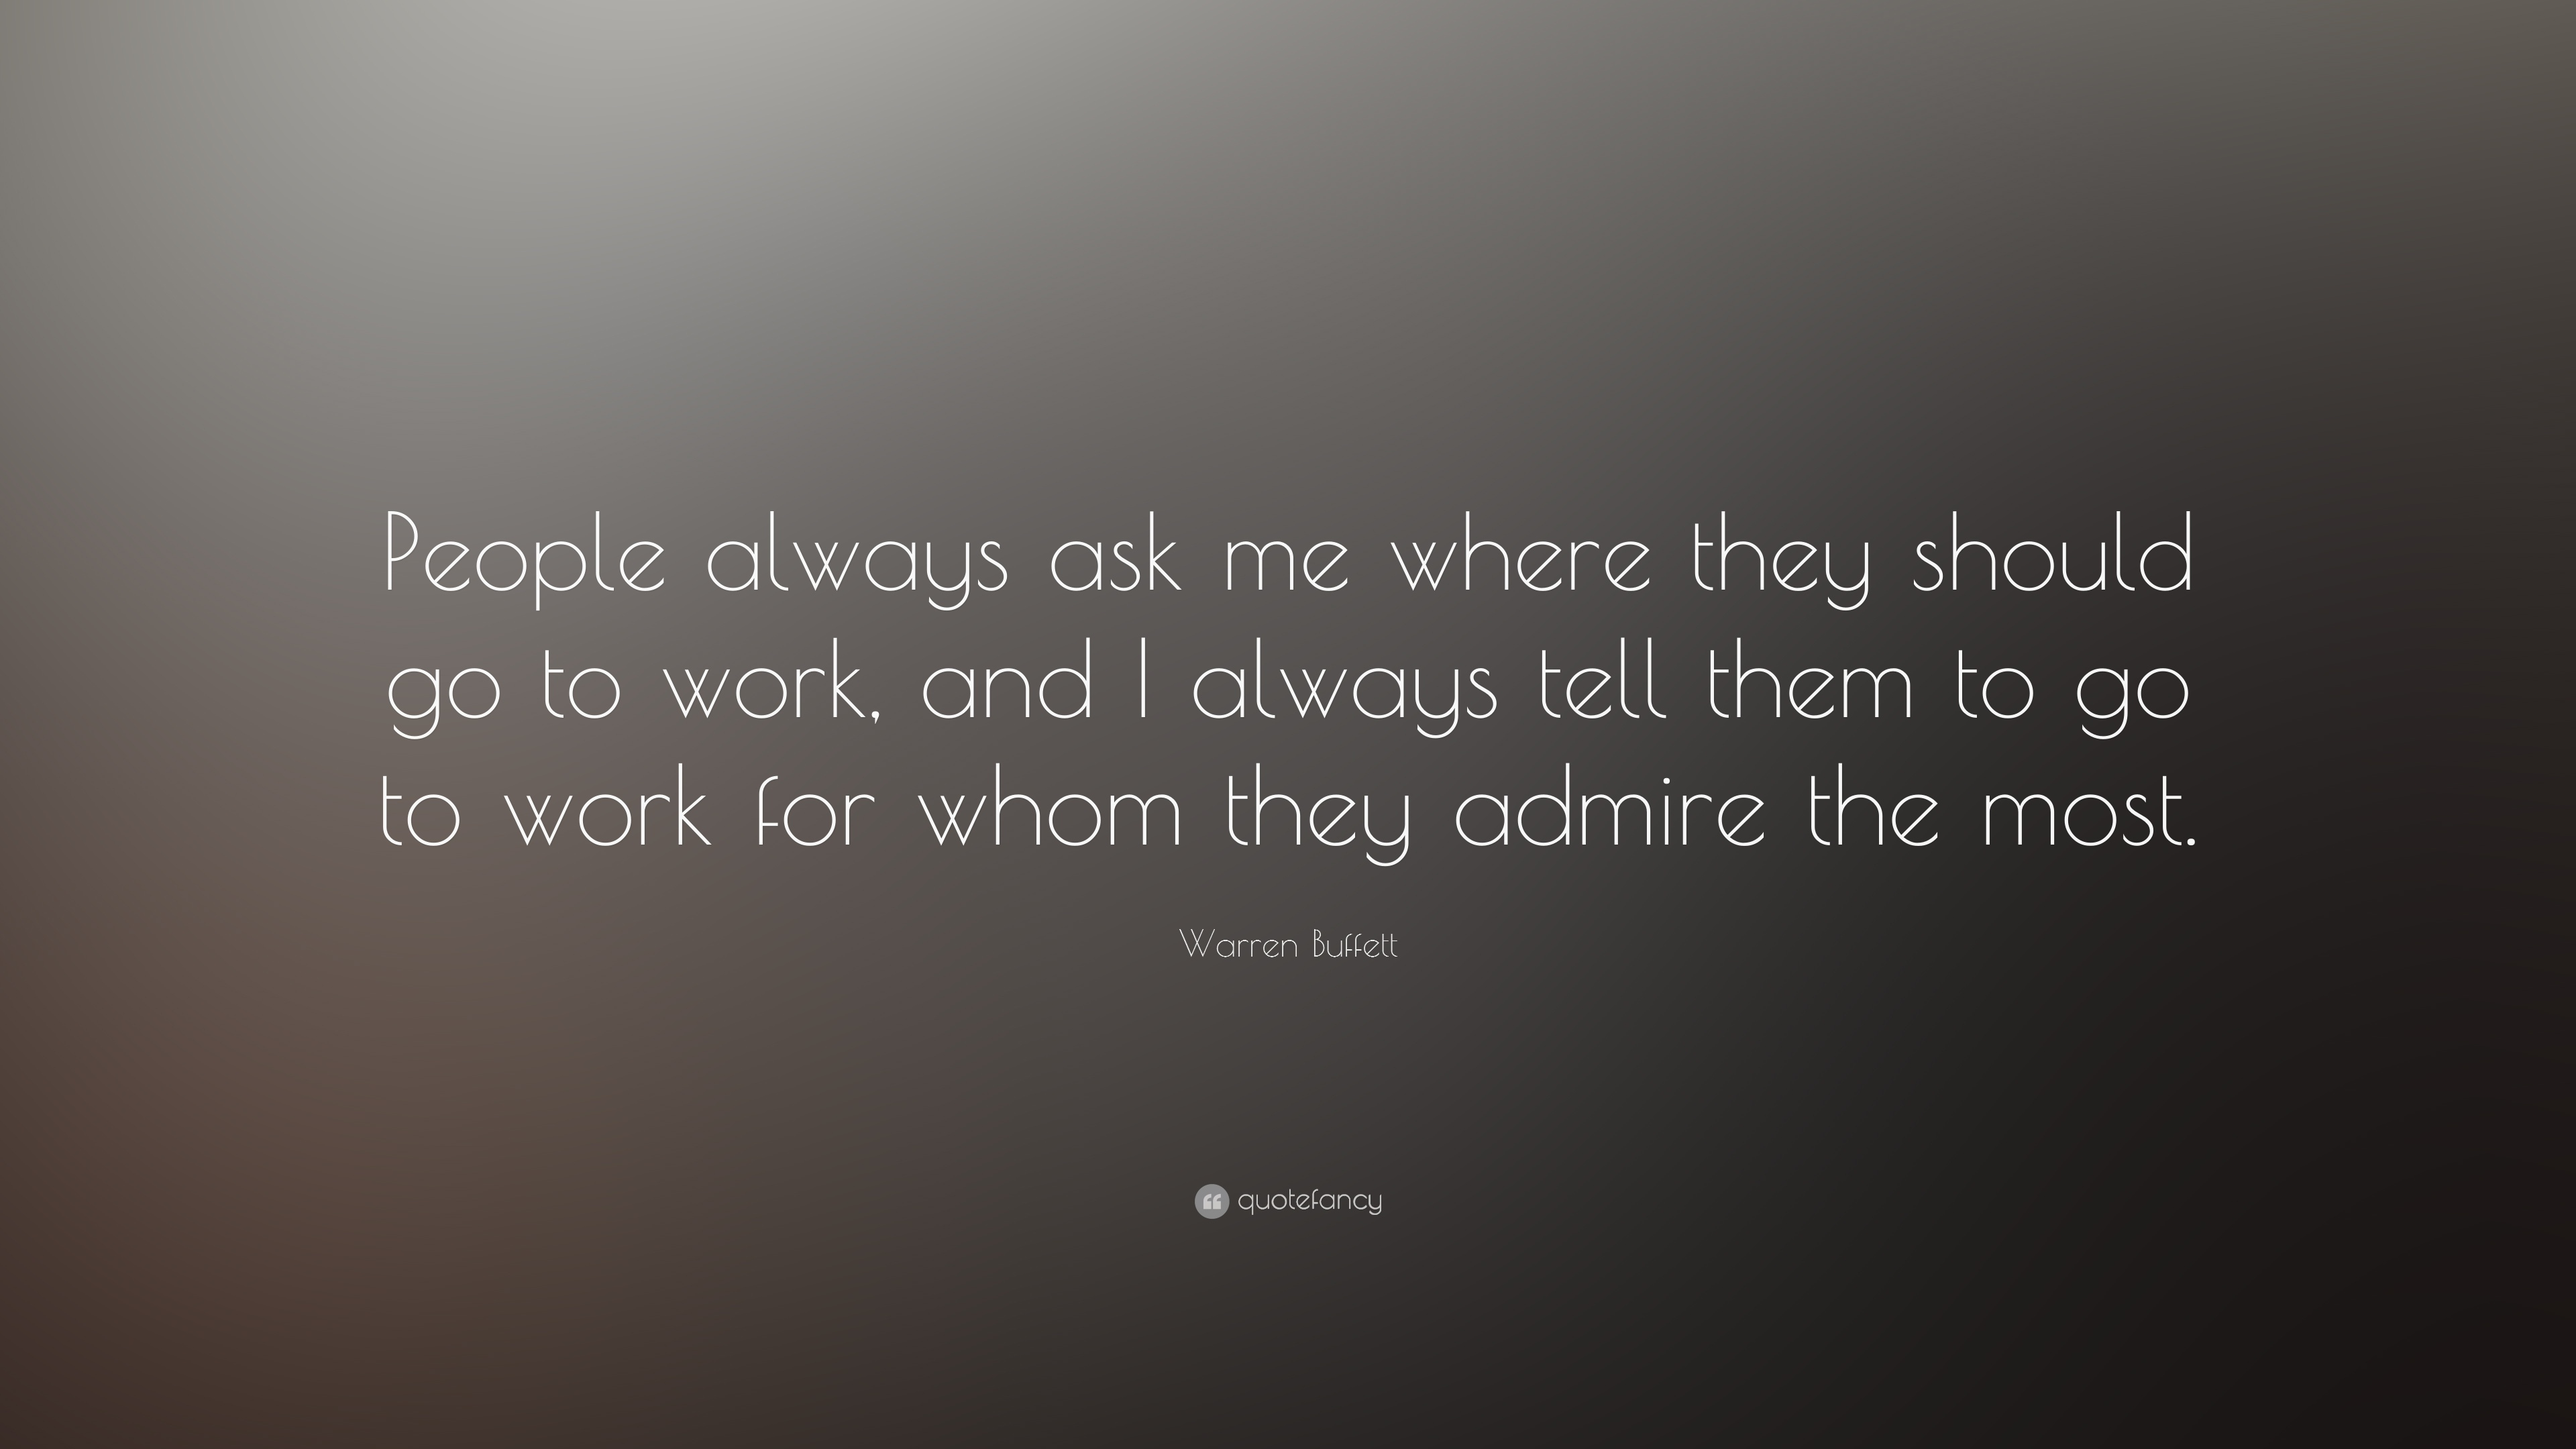 Comfort Zone Motivational Quotes Wallpaper Warren Buffett Quote People Always Ask Me Where They